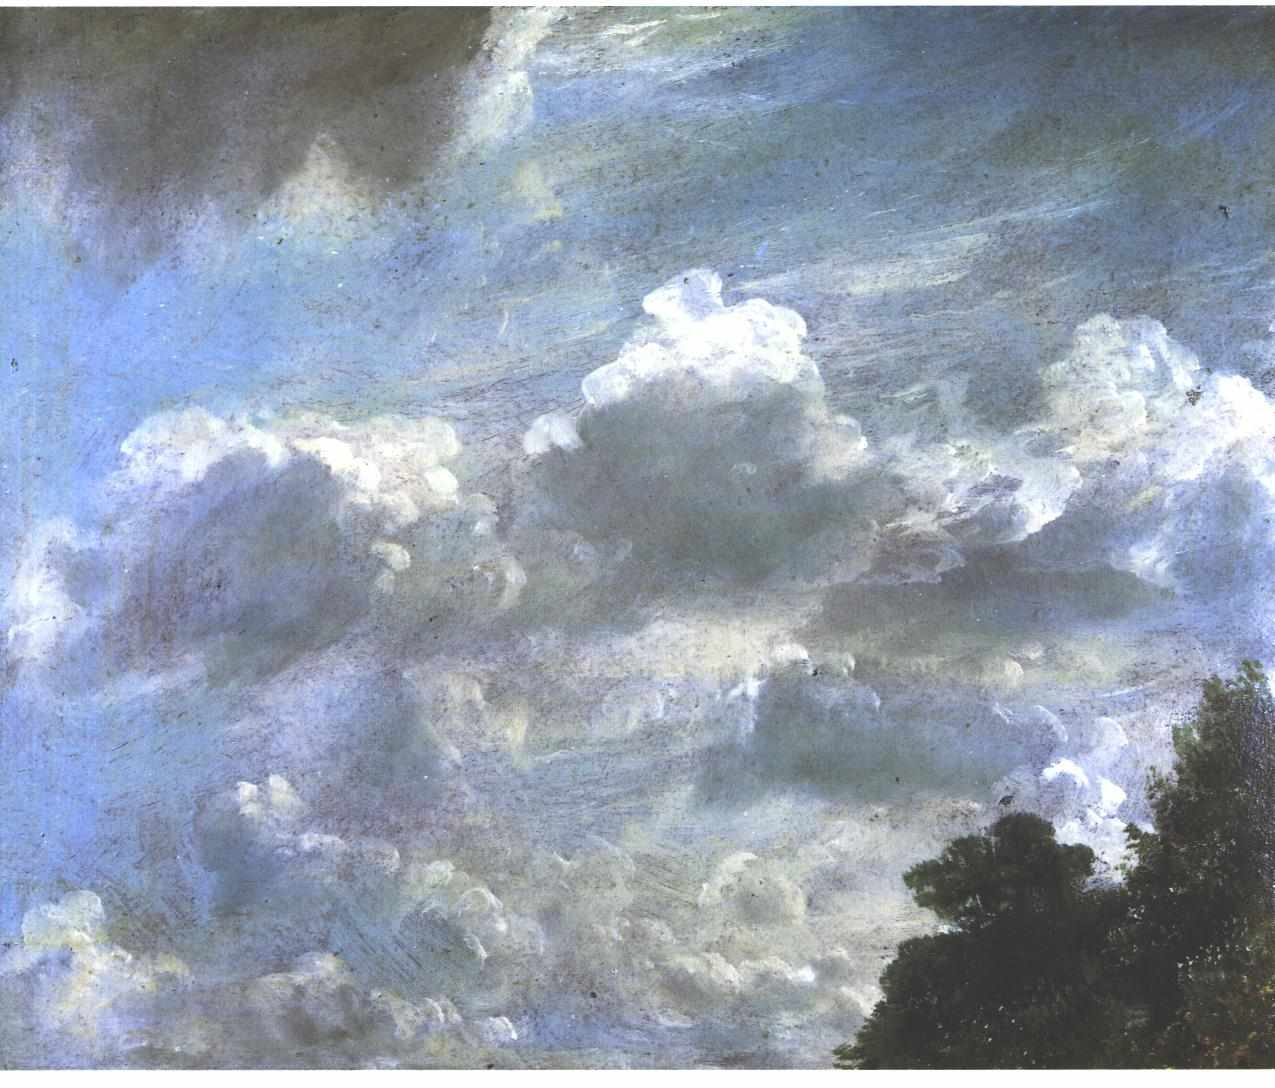 Cloud Study 1821, John Constable. Yale Centre For British Art, Hartford, Connecticut.